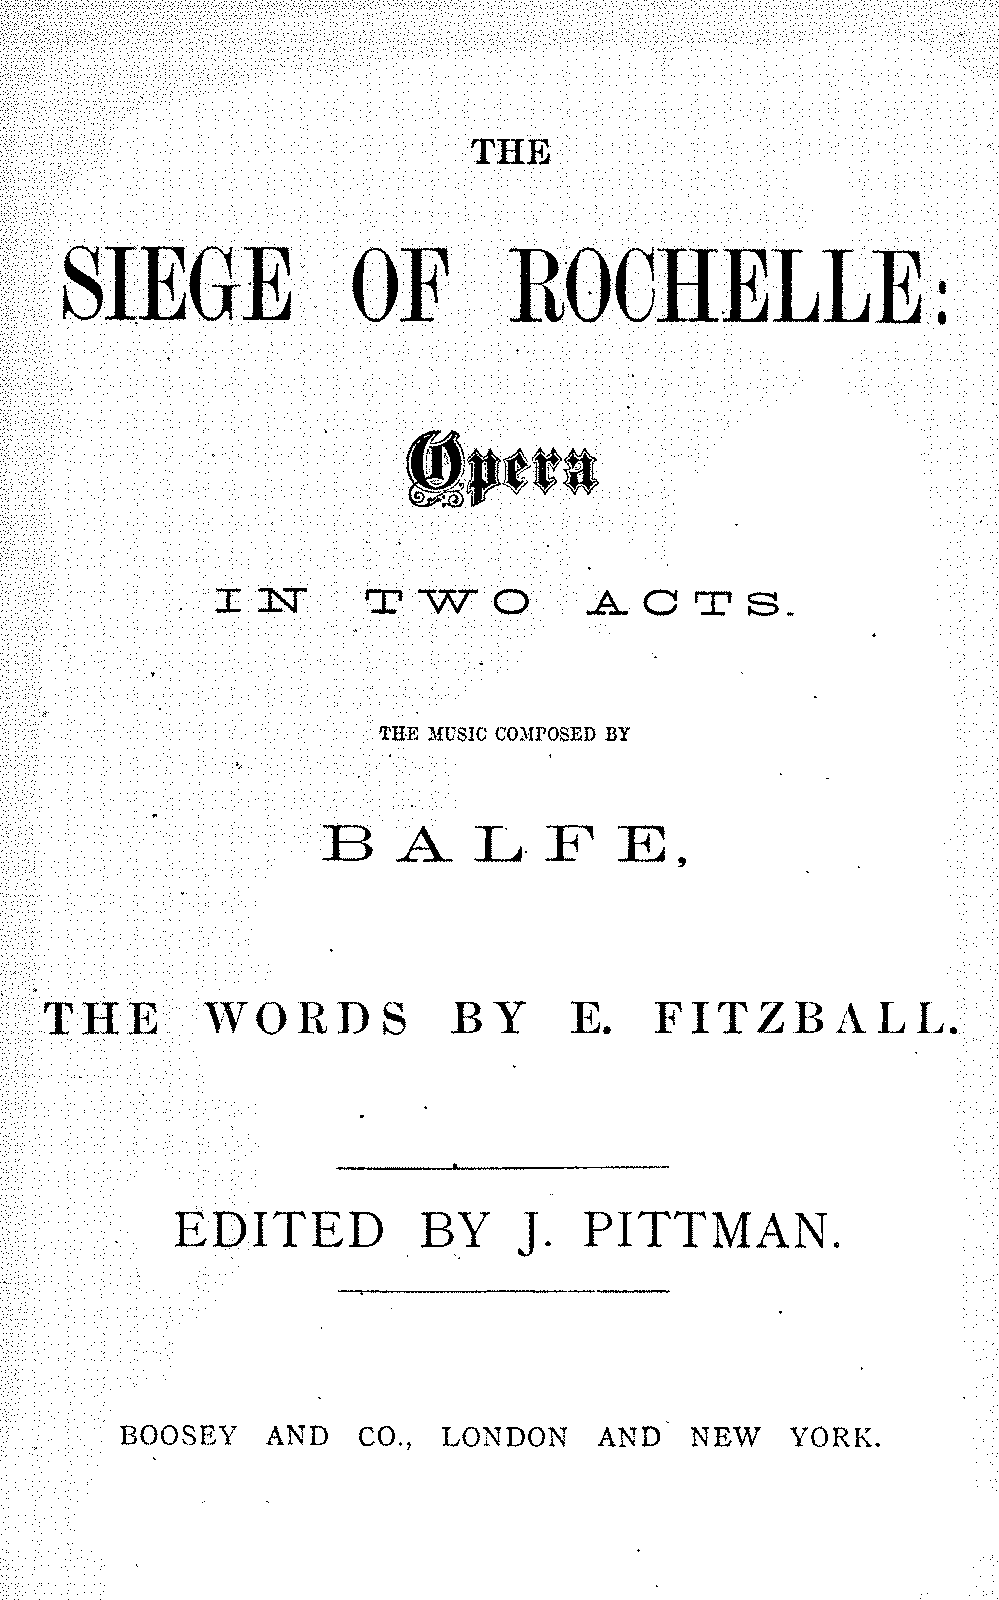 PMLP266755-Balfe - The Siege of Rochelle VS unc.pdf